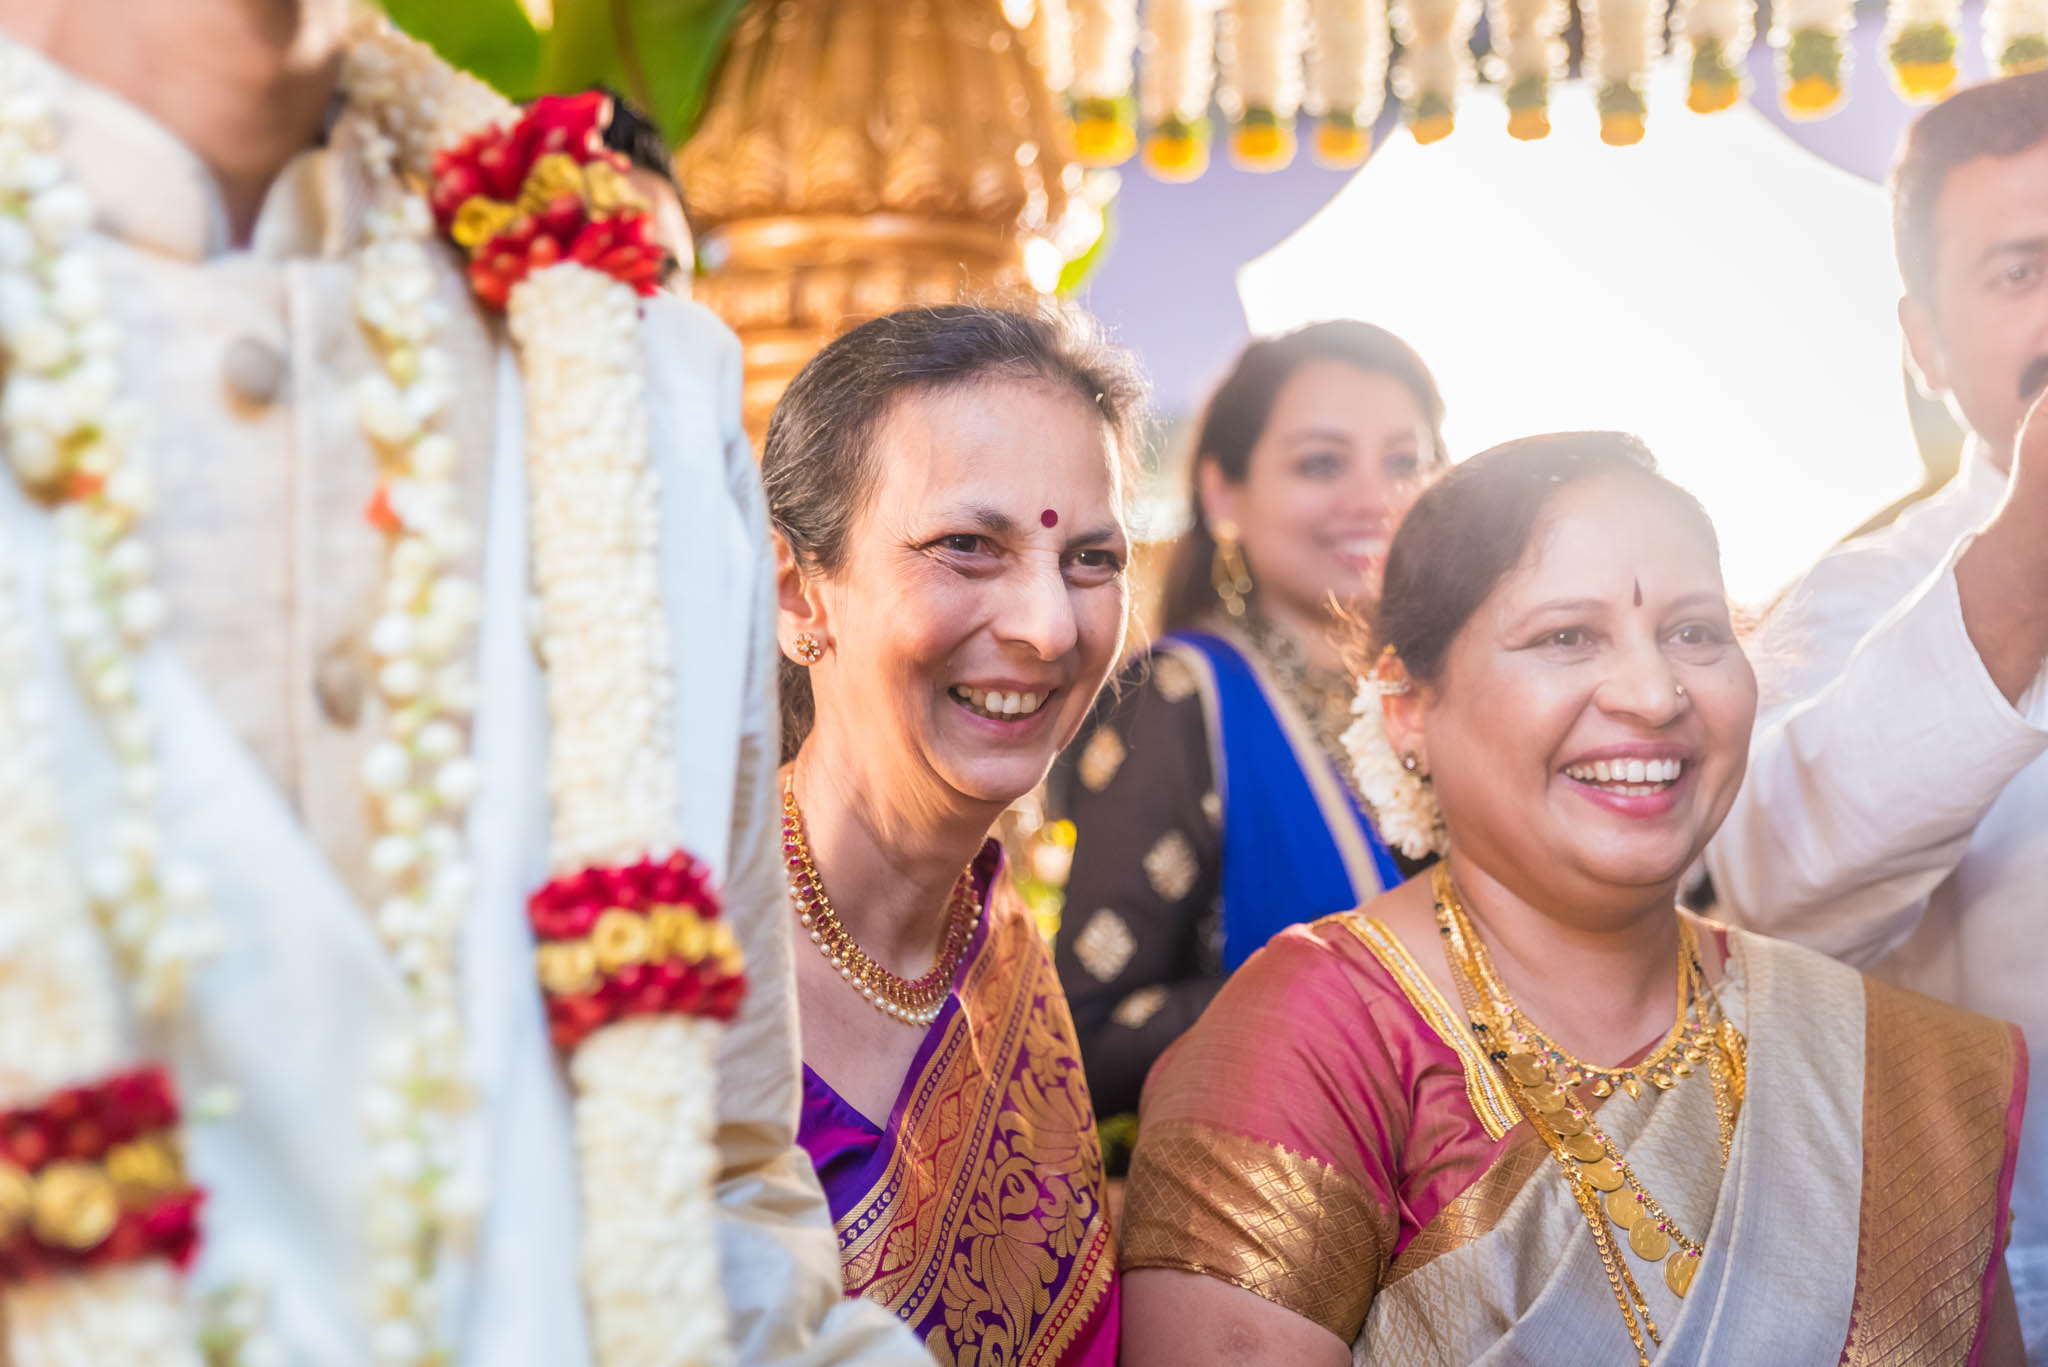 WhatKnot-Candid-Wedding-Photography-Mumbai-Bangalore-167